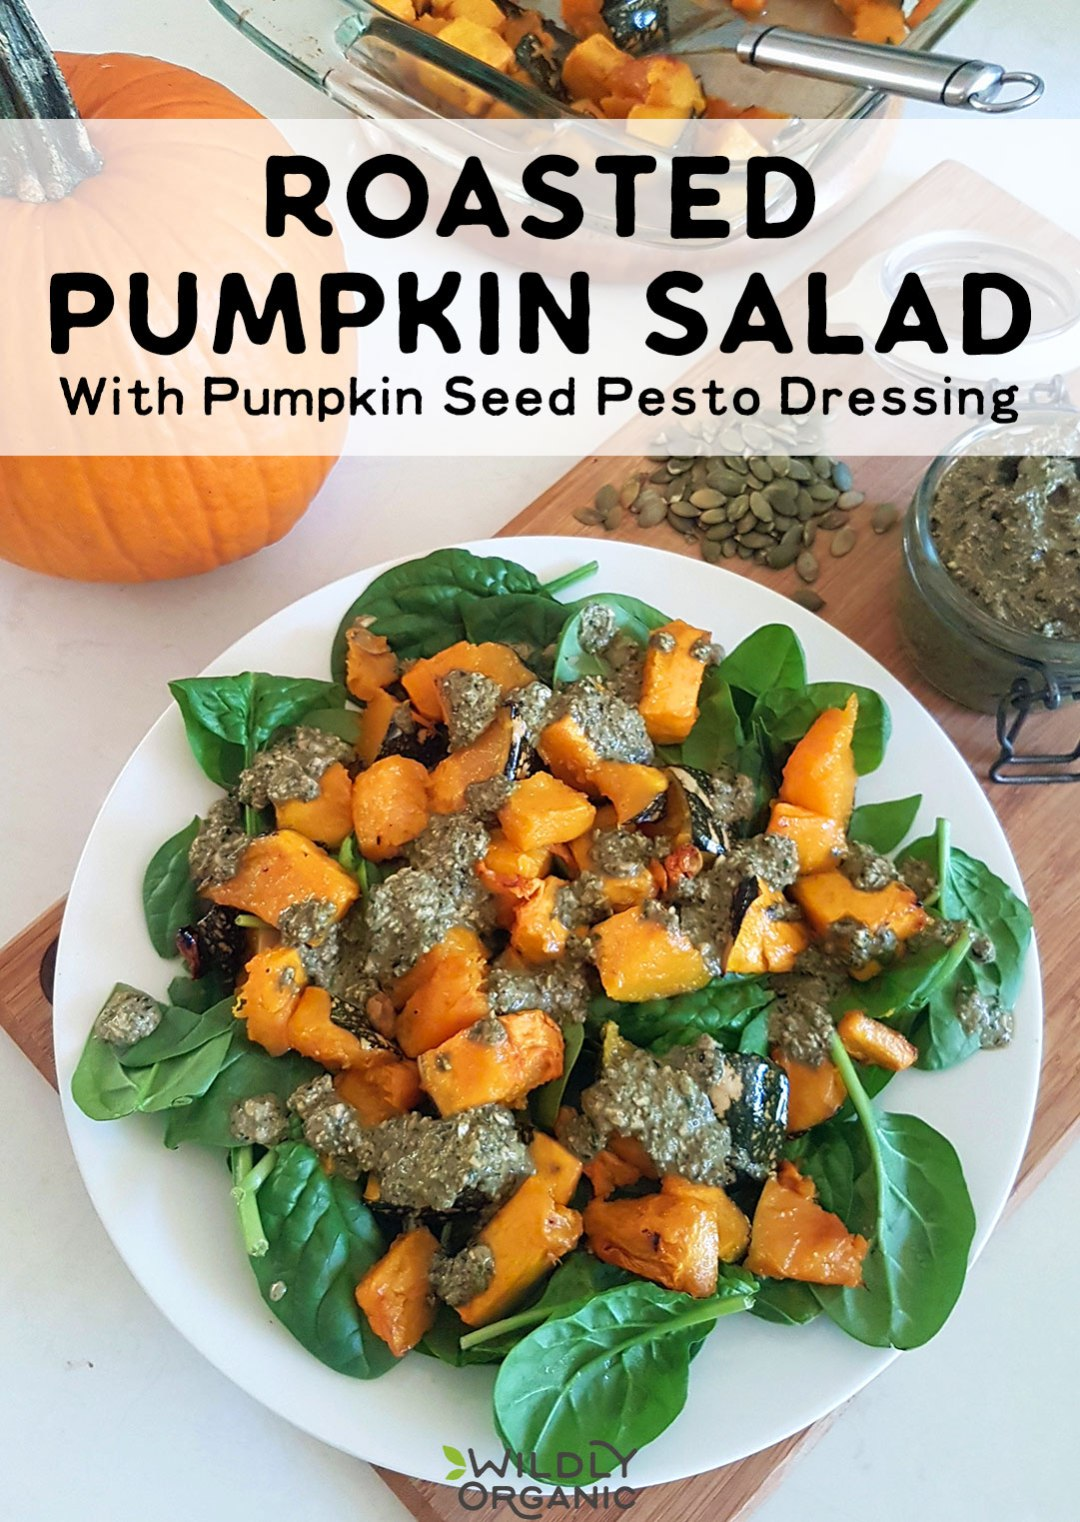 The beauty of this roasted pumpkin salad with pumpkin seed pesto dressing is that you can use ANY squash, not just pumpkin! Enjoy this for your next healthy BBQ or cookout and wow your guests with just how yummy a seasonal salad can be!